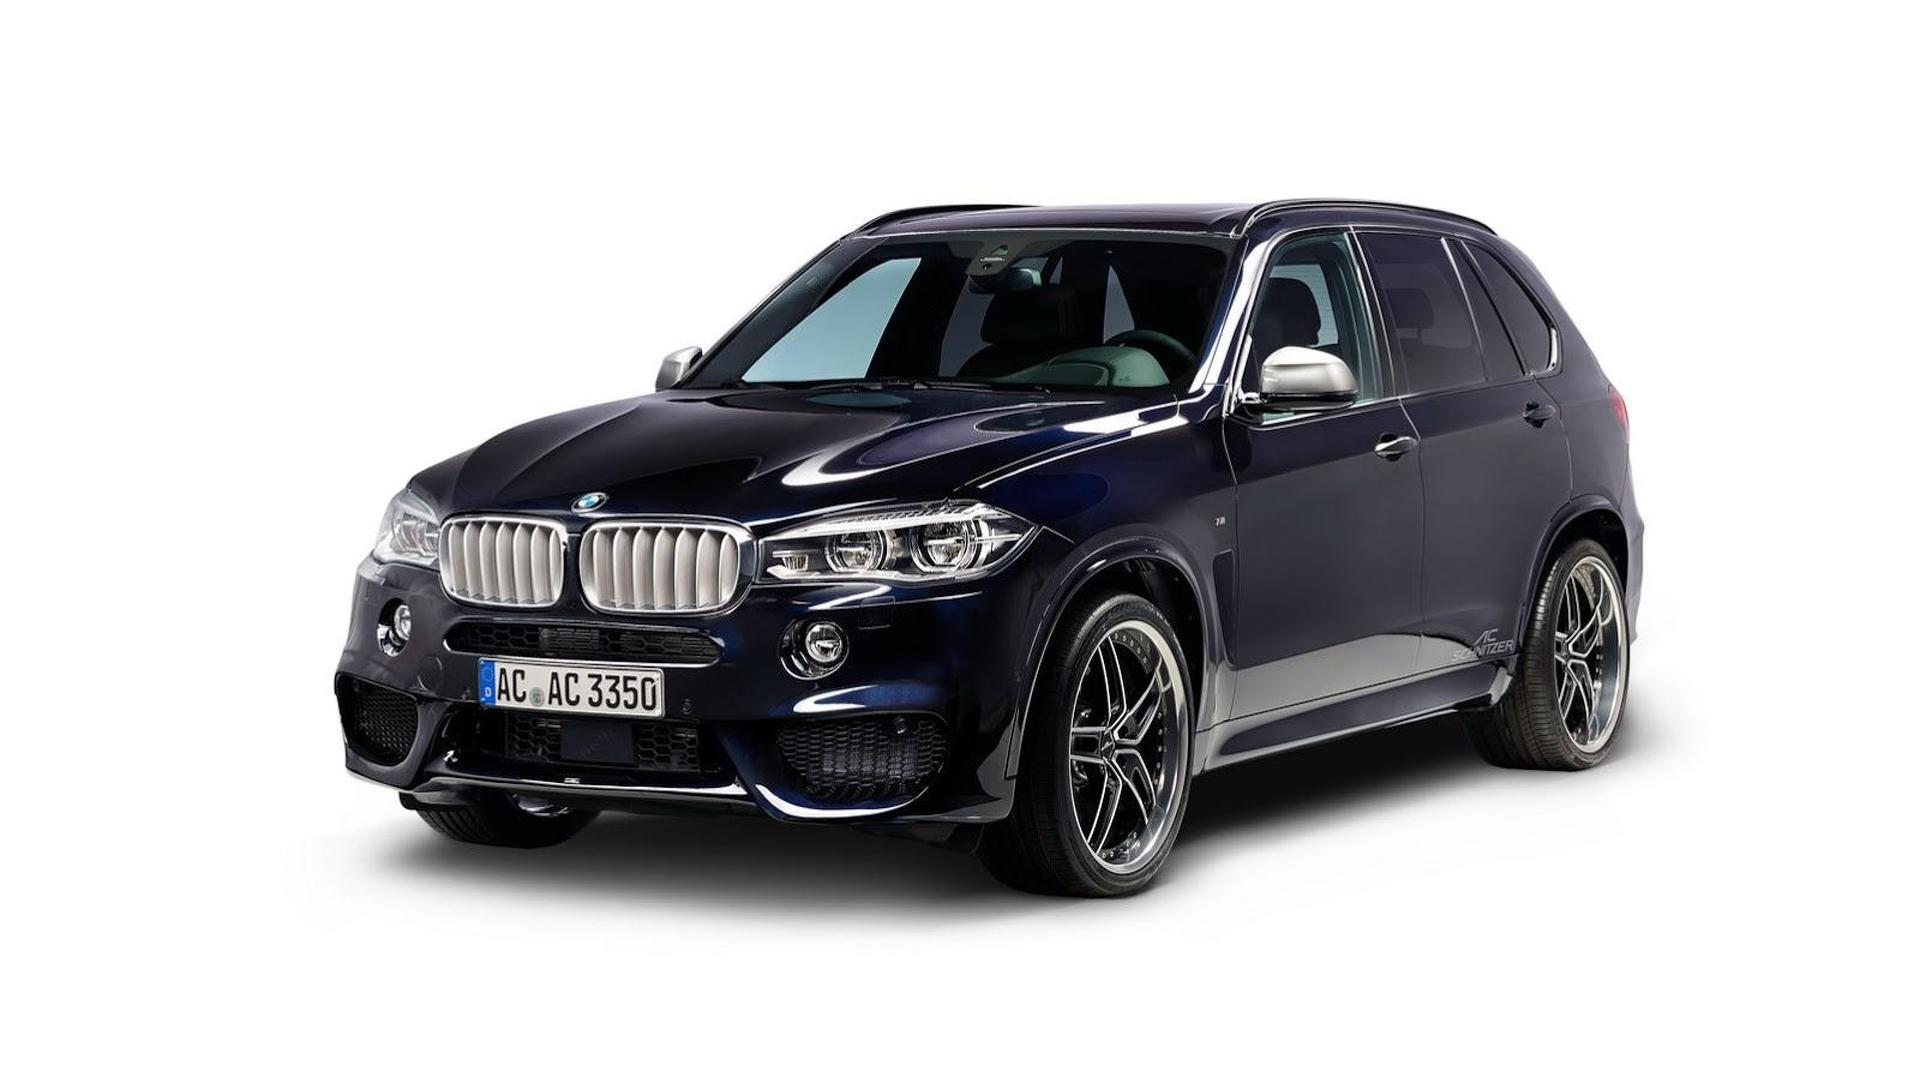 Ac Schnitzer Bringing Full Custom Kit For Third Gen Bmw X5